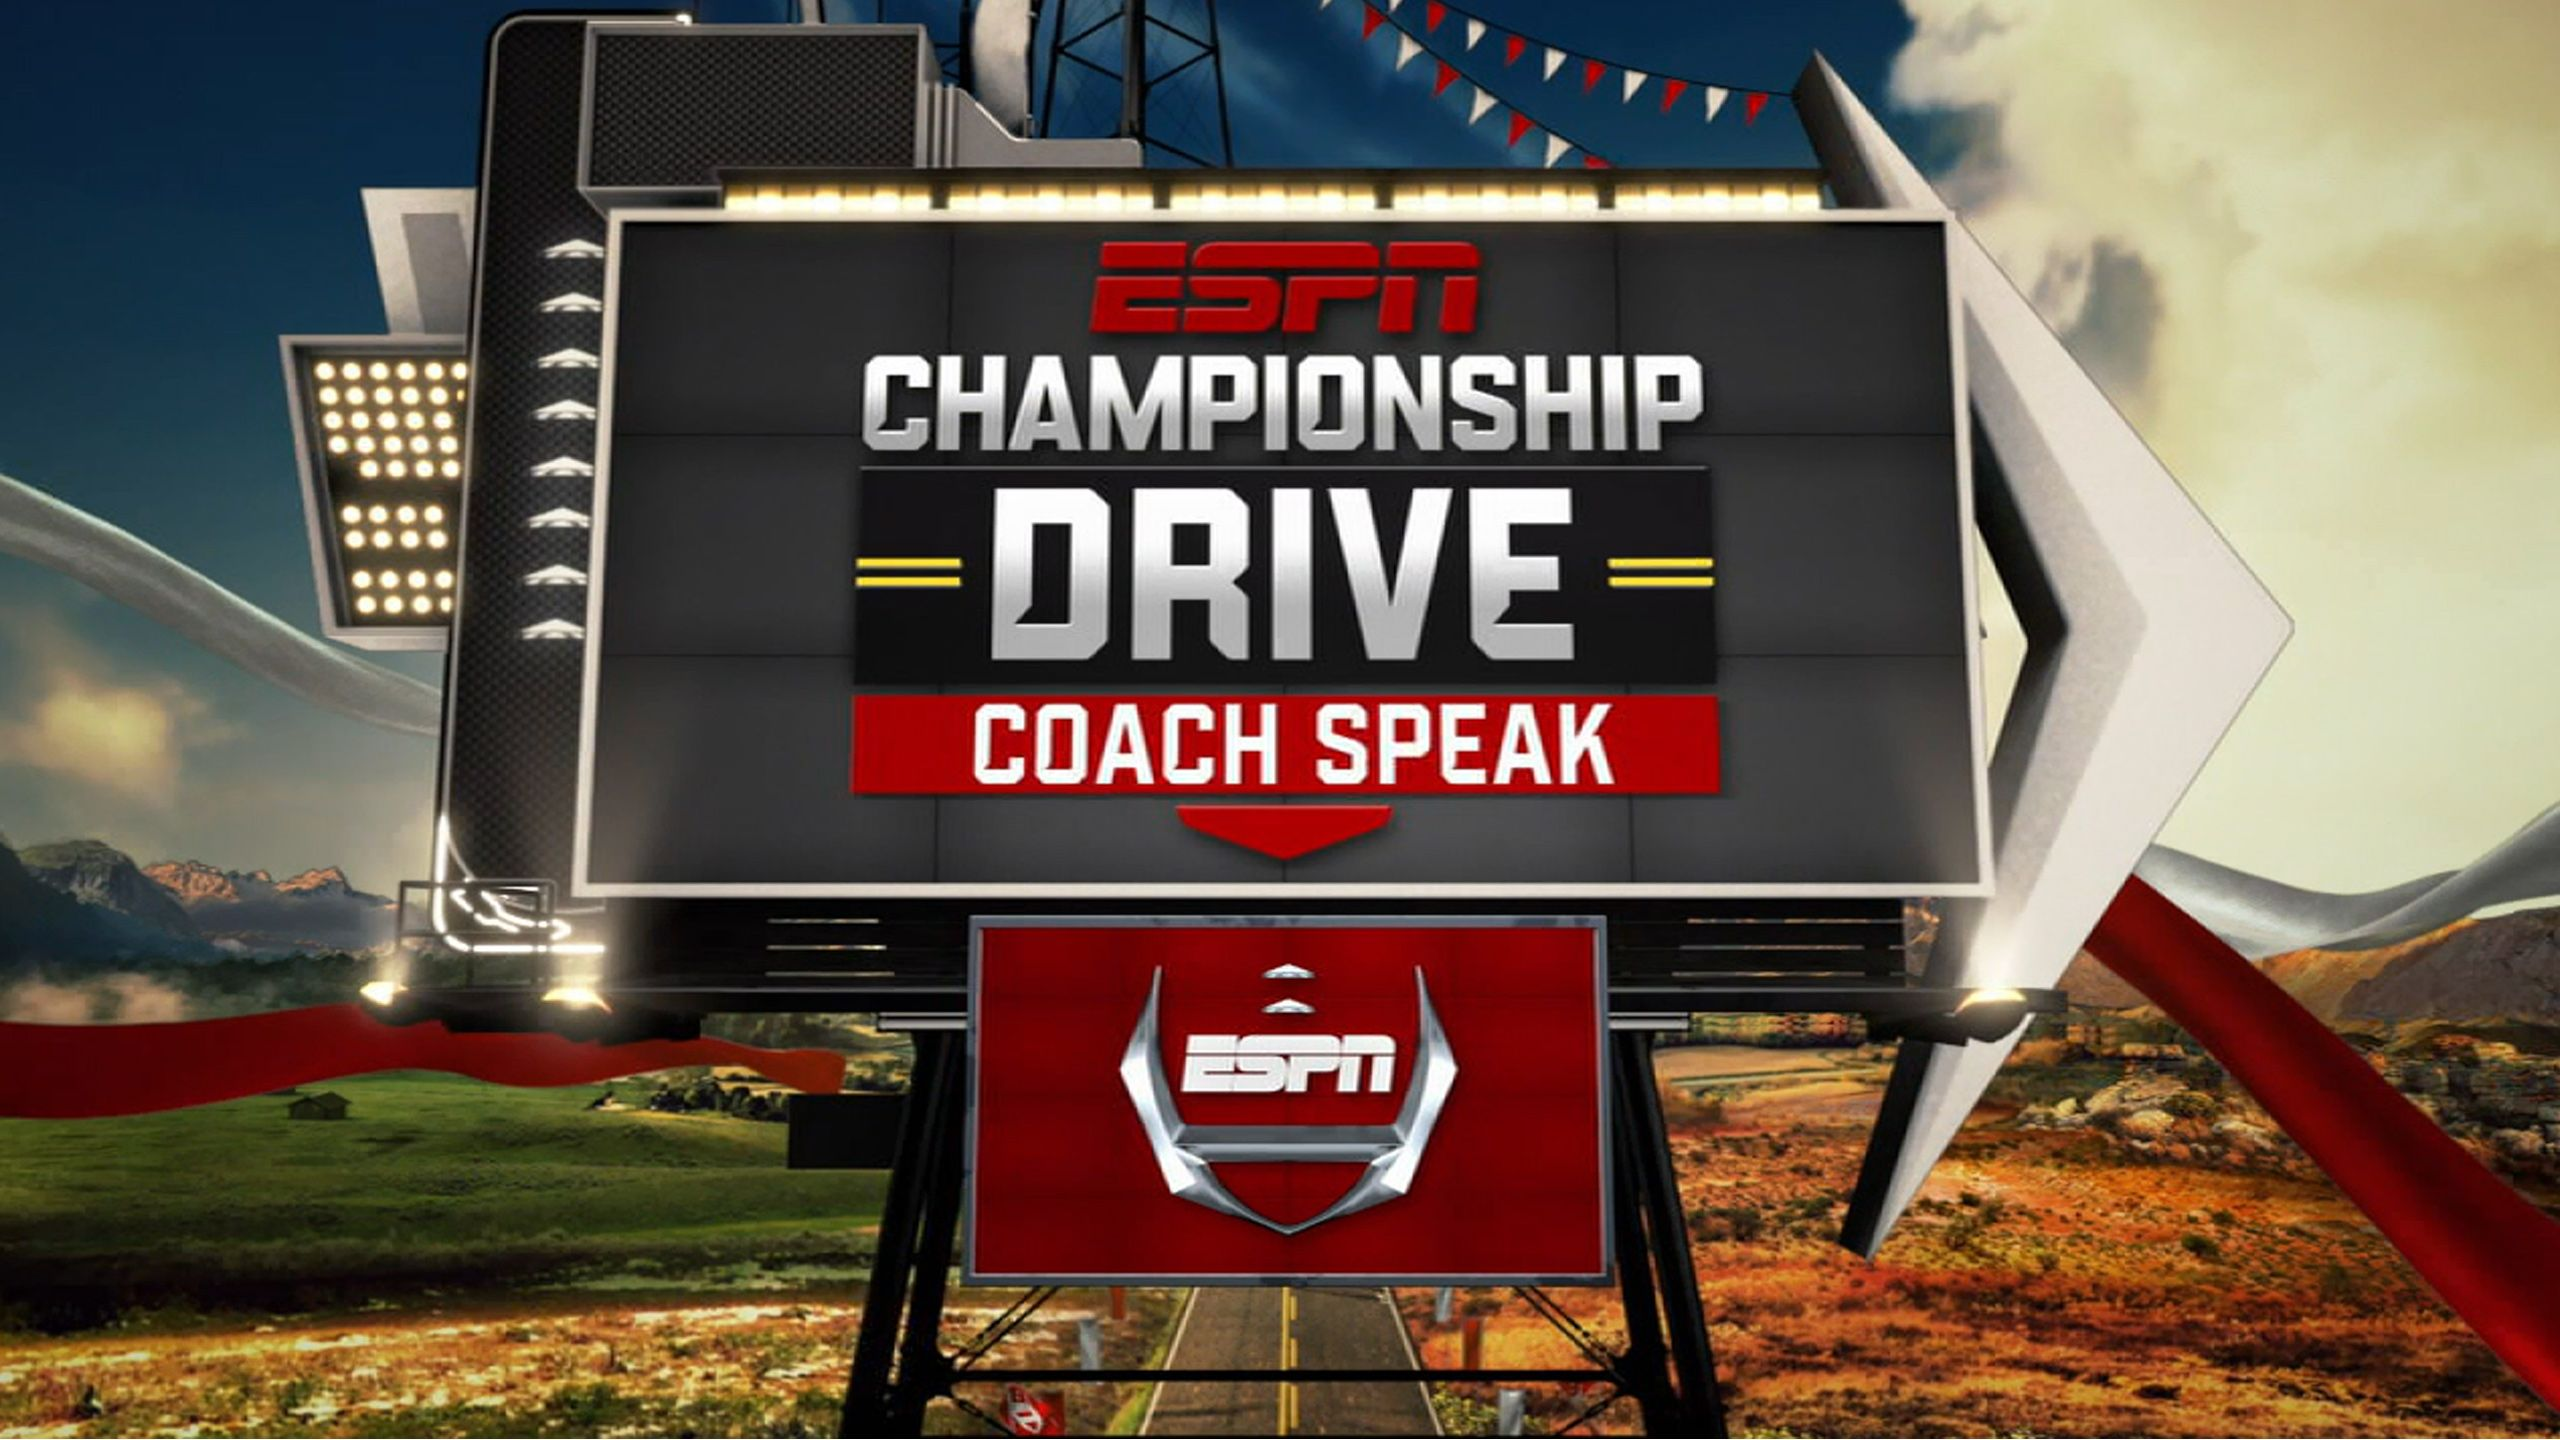 Championship Drive: Coach Speak Presented by Dr Pepper